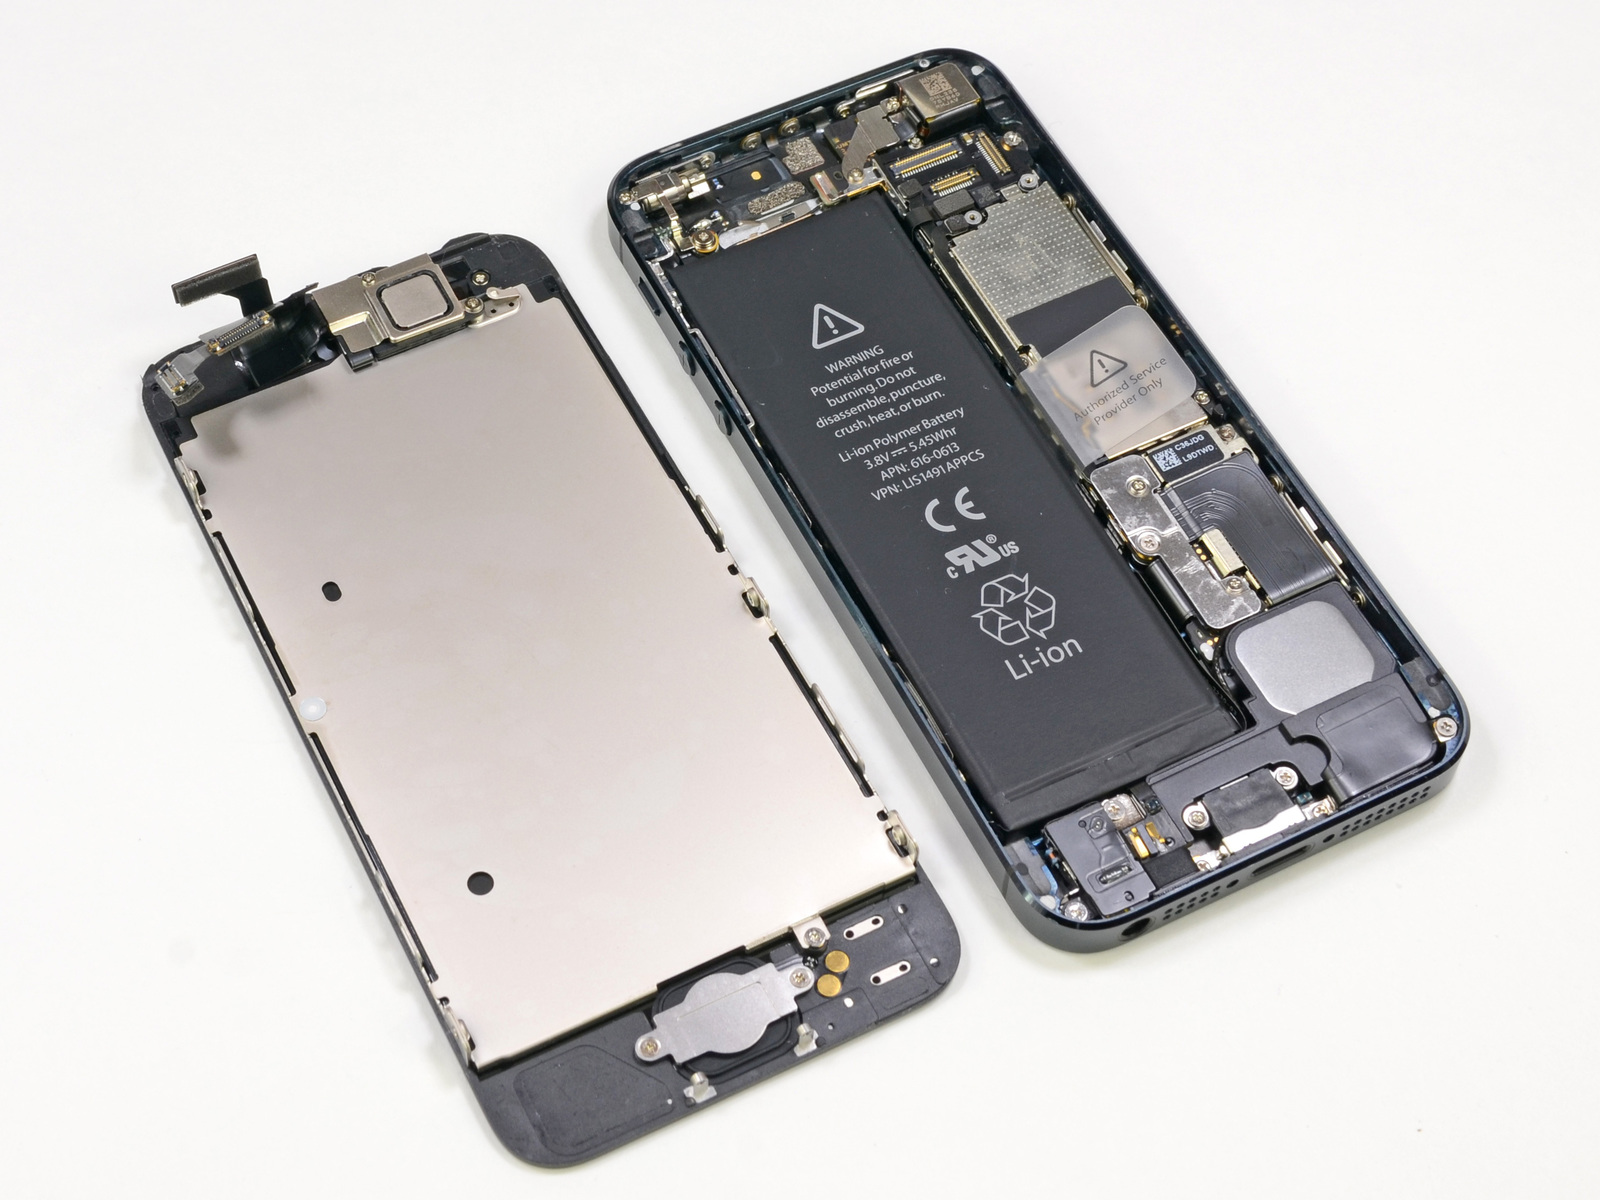 iPhone 5 teardown (iFixIt 001)